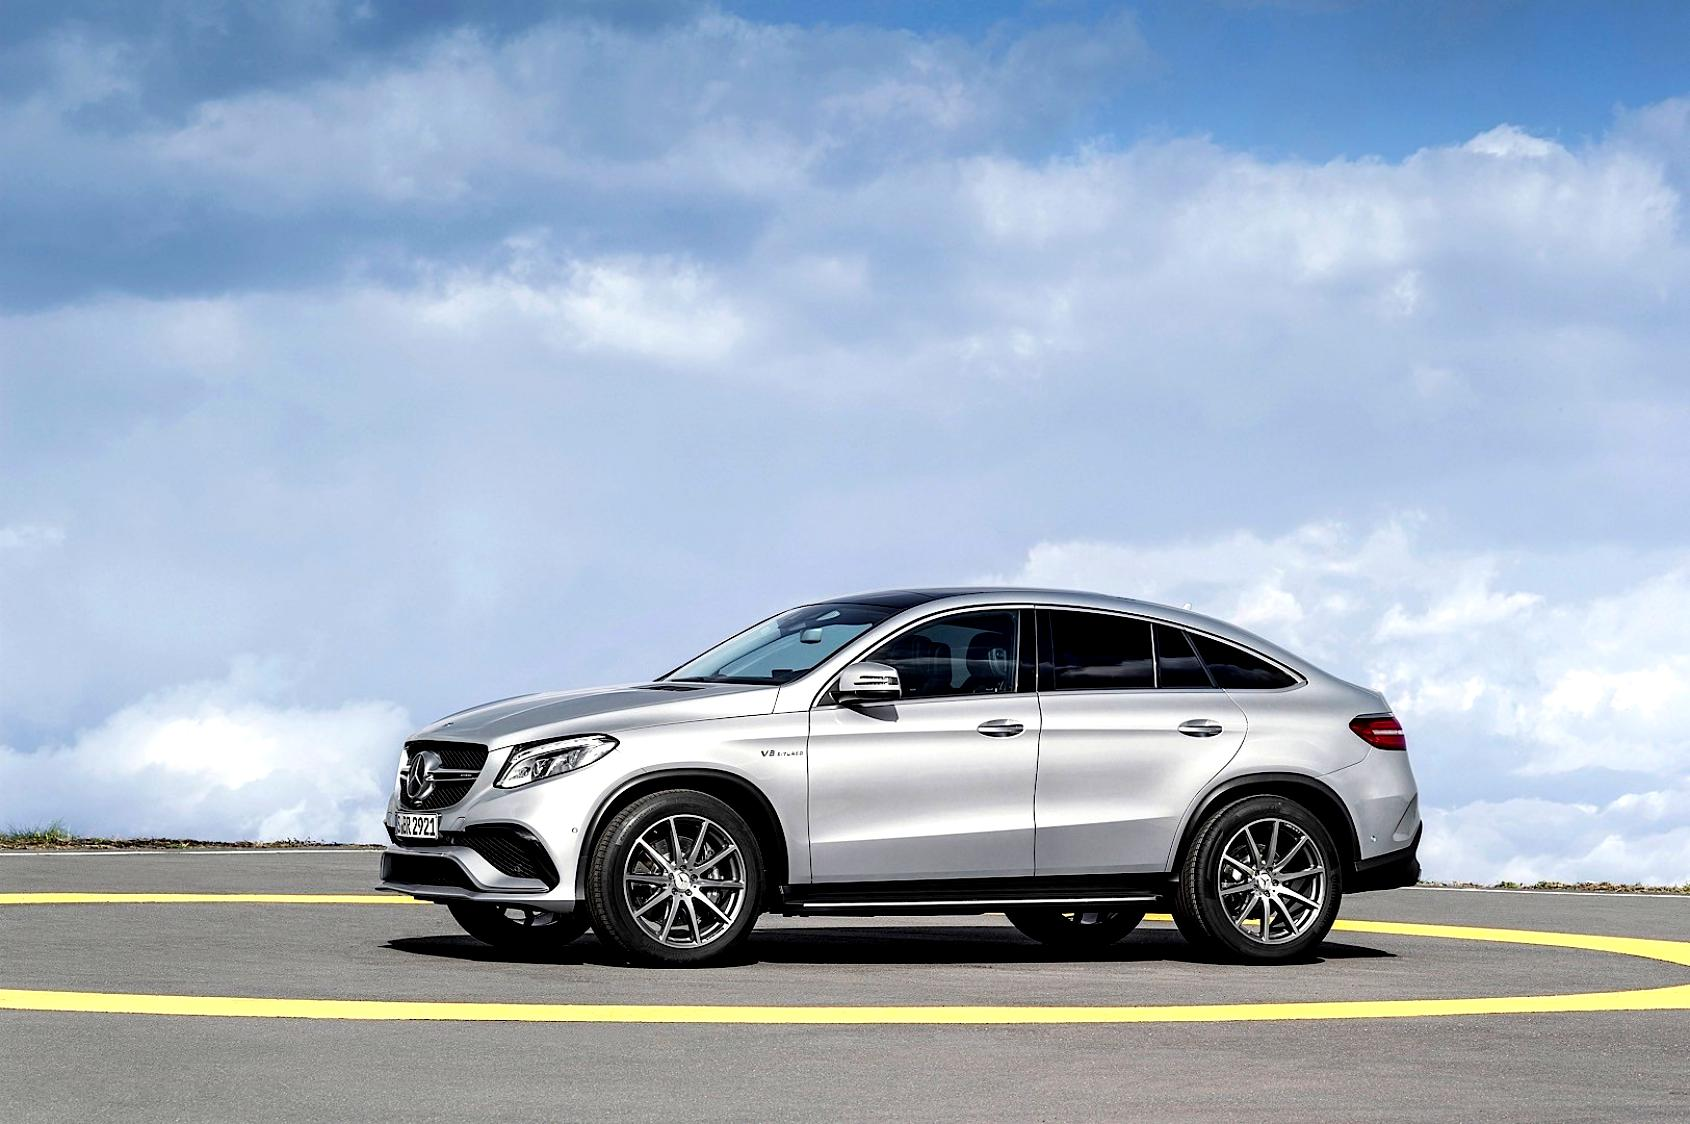 Mercedes benz gle coupe amg 2015 photos 33 on for Mercedes benz gle coupe amg